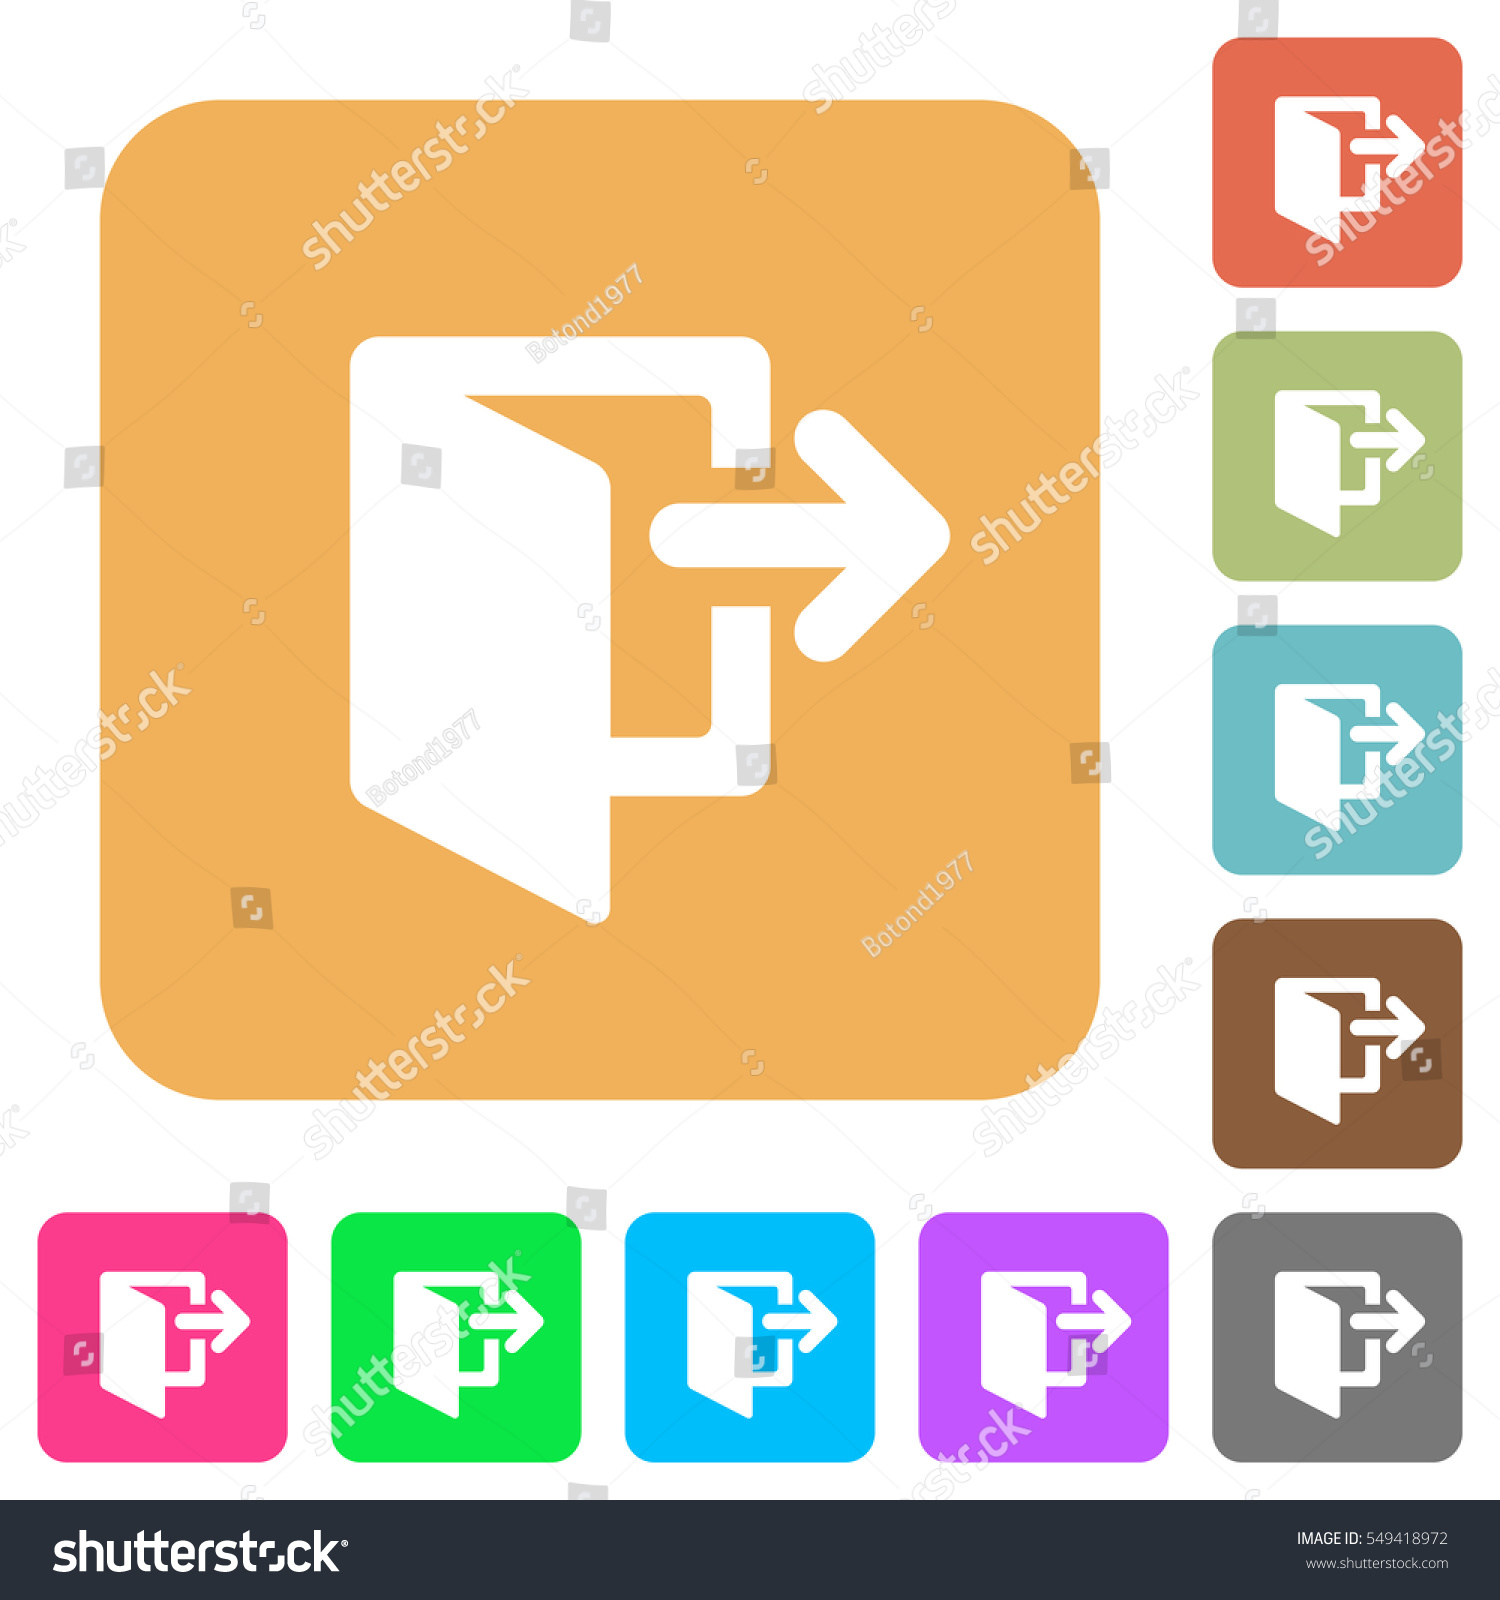 Exit Icons On Rounded Square Vivid 549418972